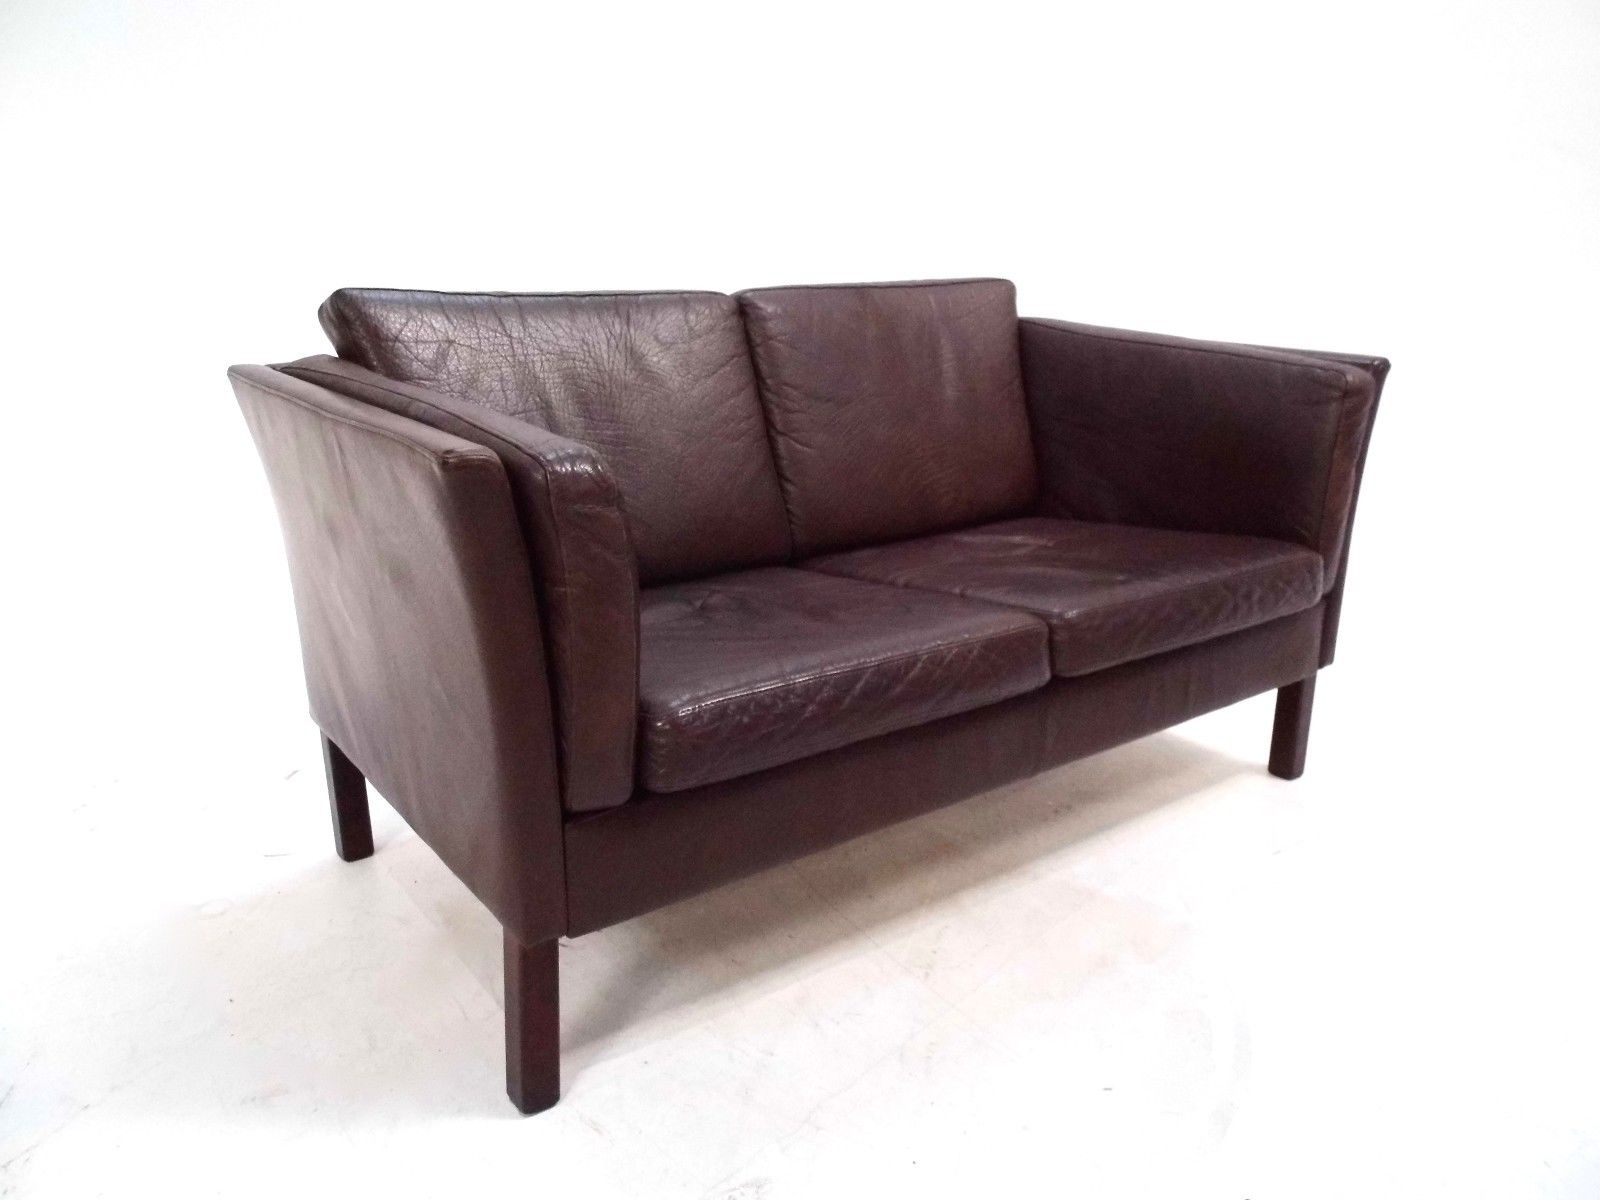 Danish Dark Brown Leather Two Seater Sofa 1960s For Sale At Pamono Intended For Two Seater Sofas (Image 9 of 15)